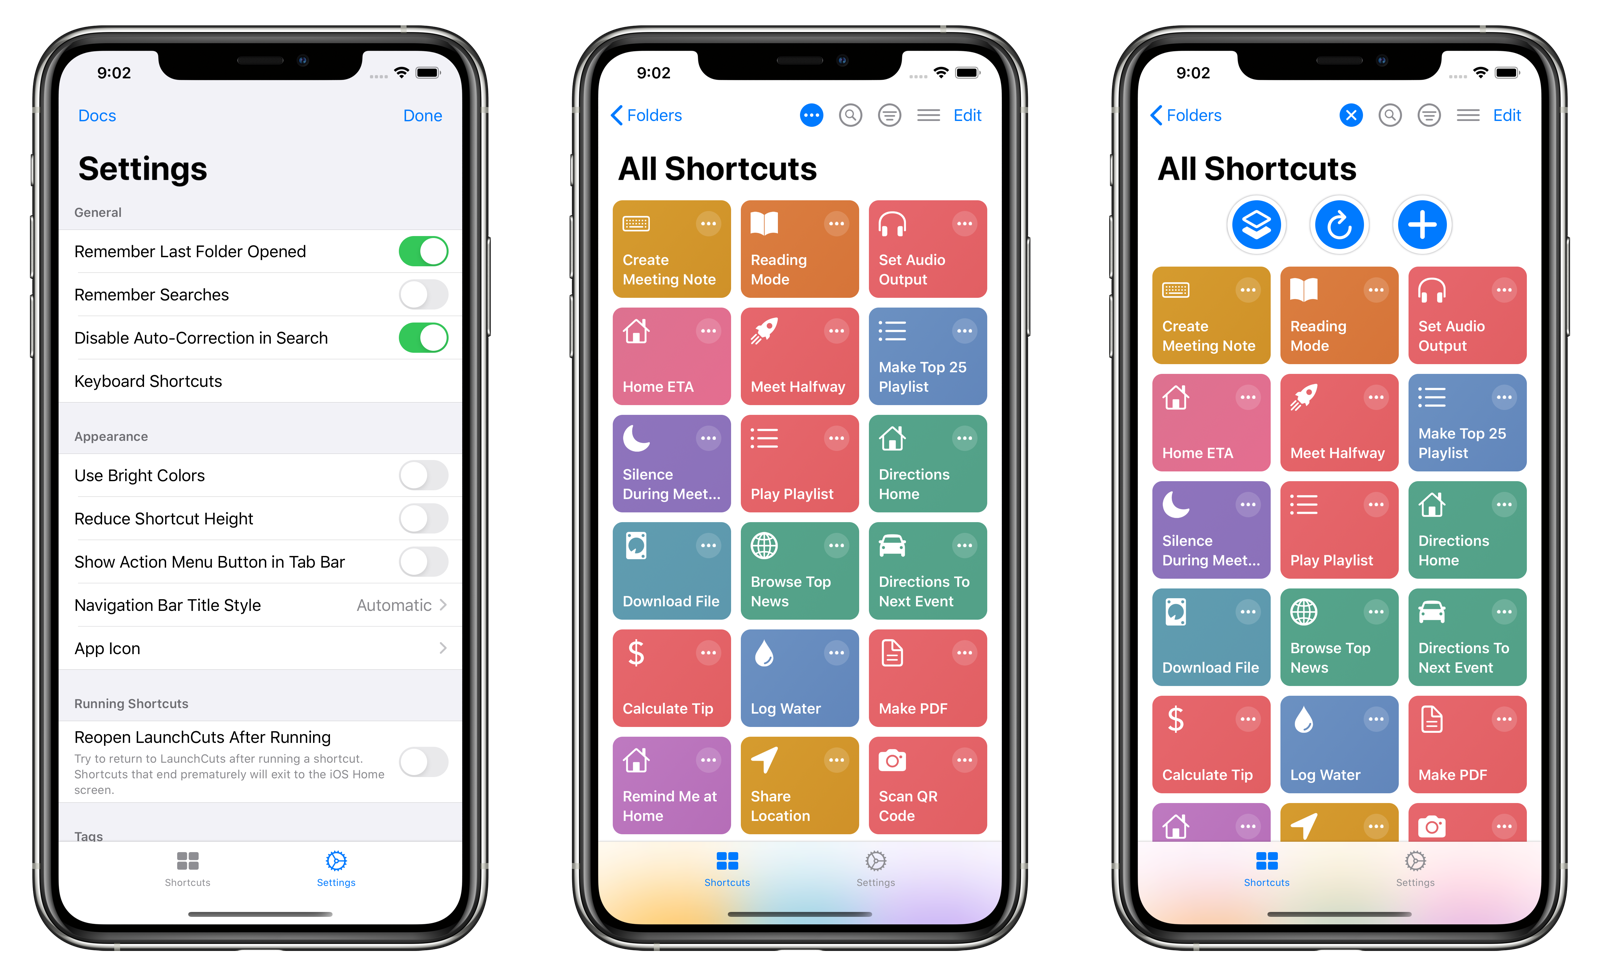 Action Menu in the Shortcuts View Navigation Bar